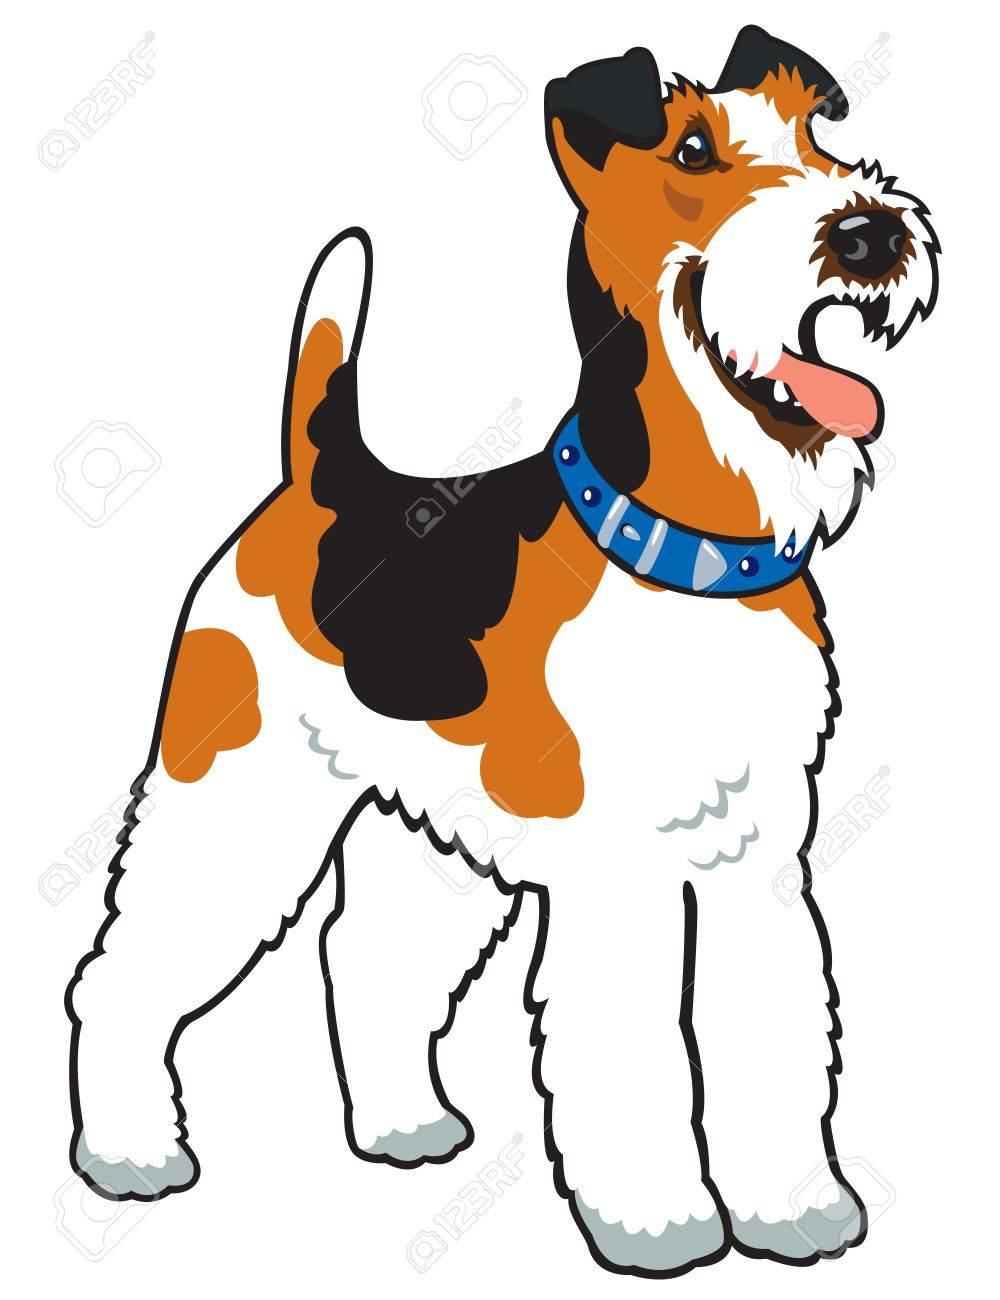 dog,fox terrier breed,vector picture isolated on white background,standing pose Stock Vector - 16526639